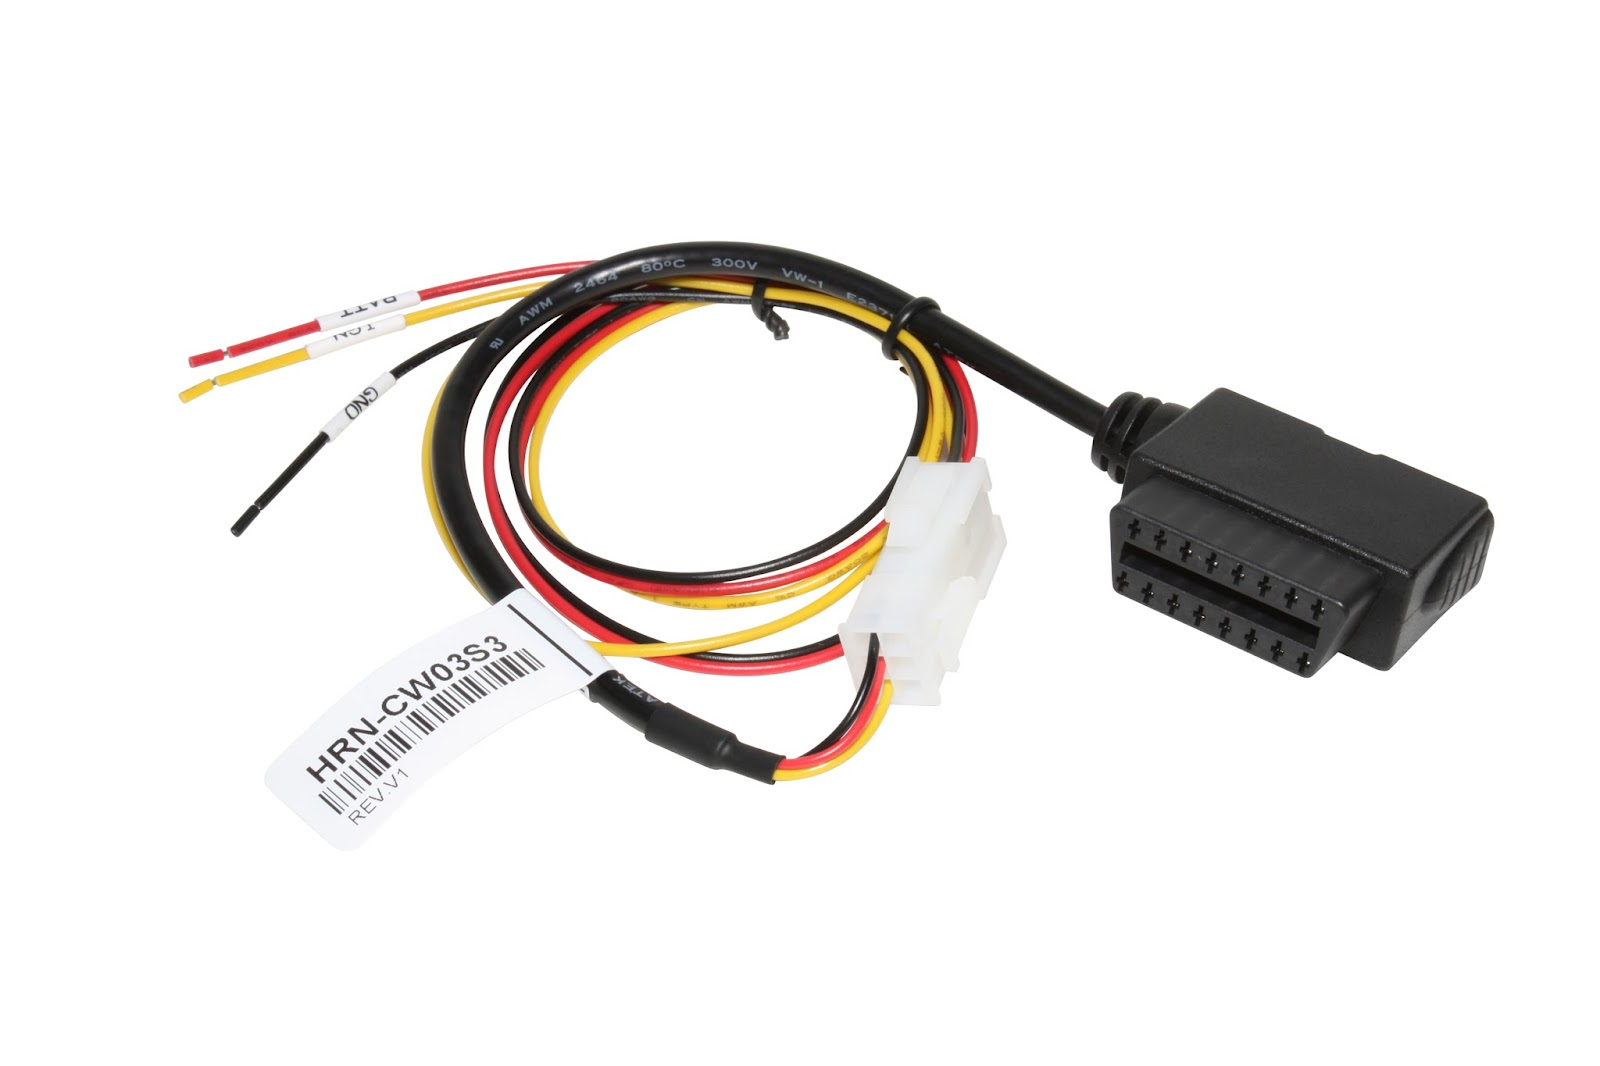 Geotab HRN-CW03S3 Doentation on 3 wire wiring harness, 3 wire power connector, 3 pin connector, 3 hose connector, screw terminal connector, 3 terminal connector, 6 pin wire connector,